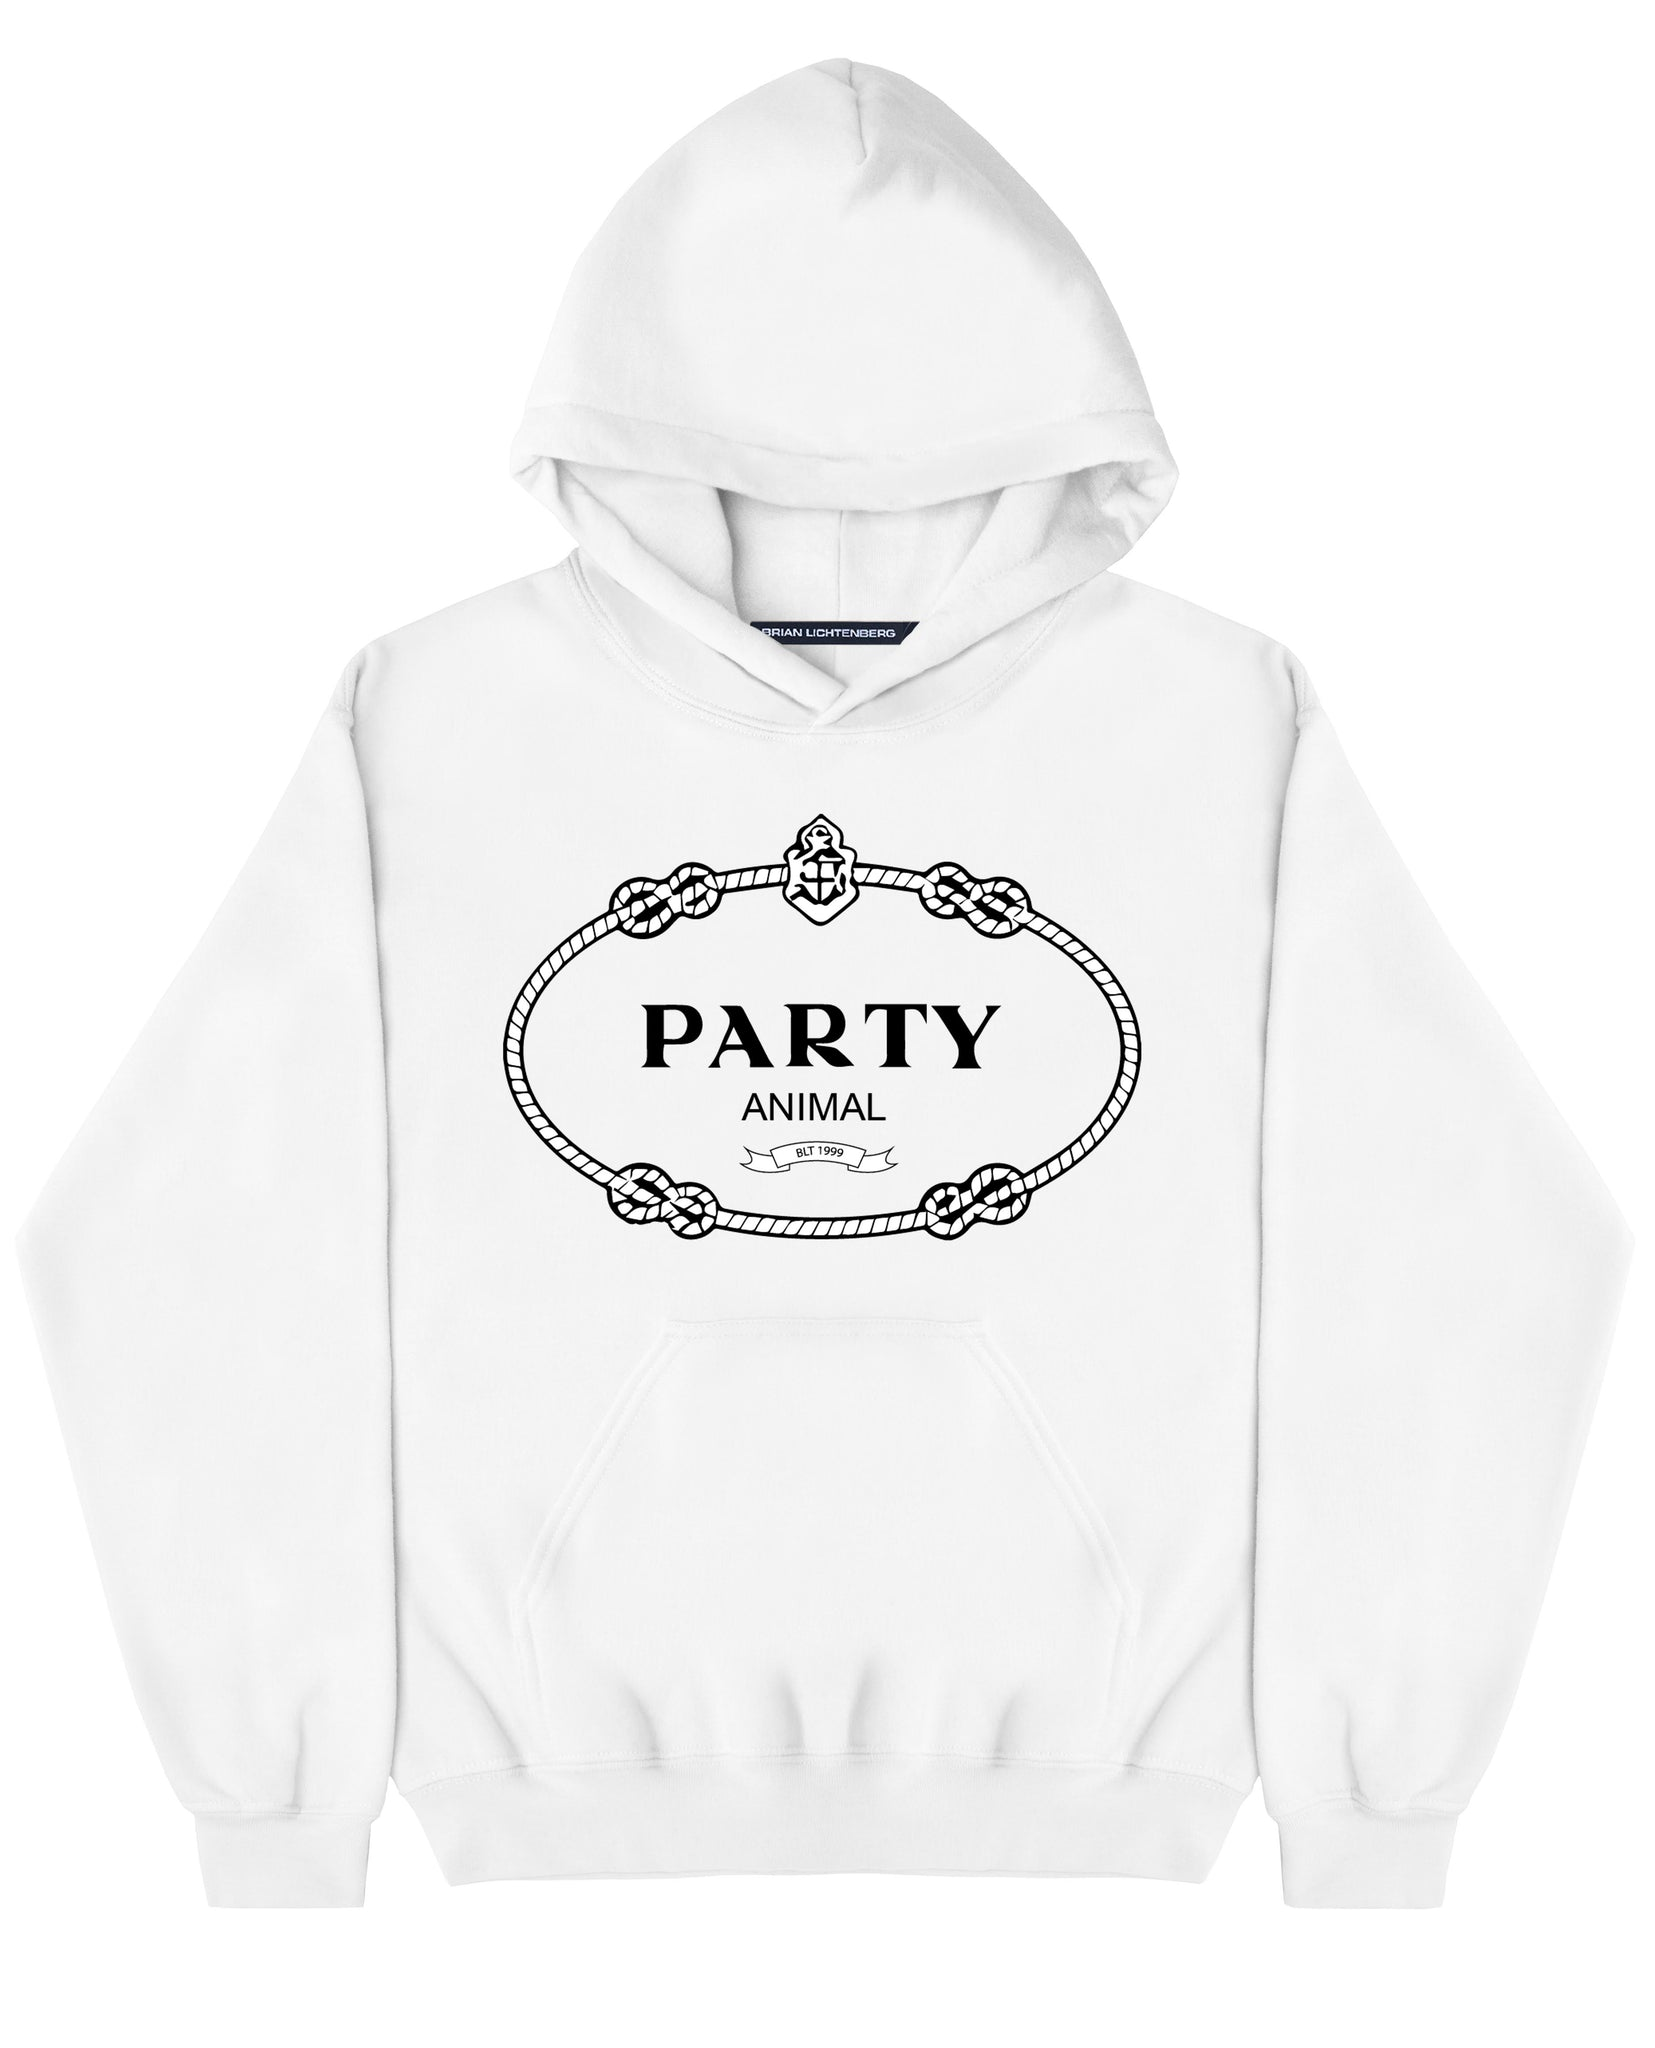 PARTY ANIMAL HOODIE